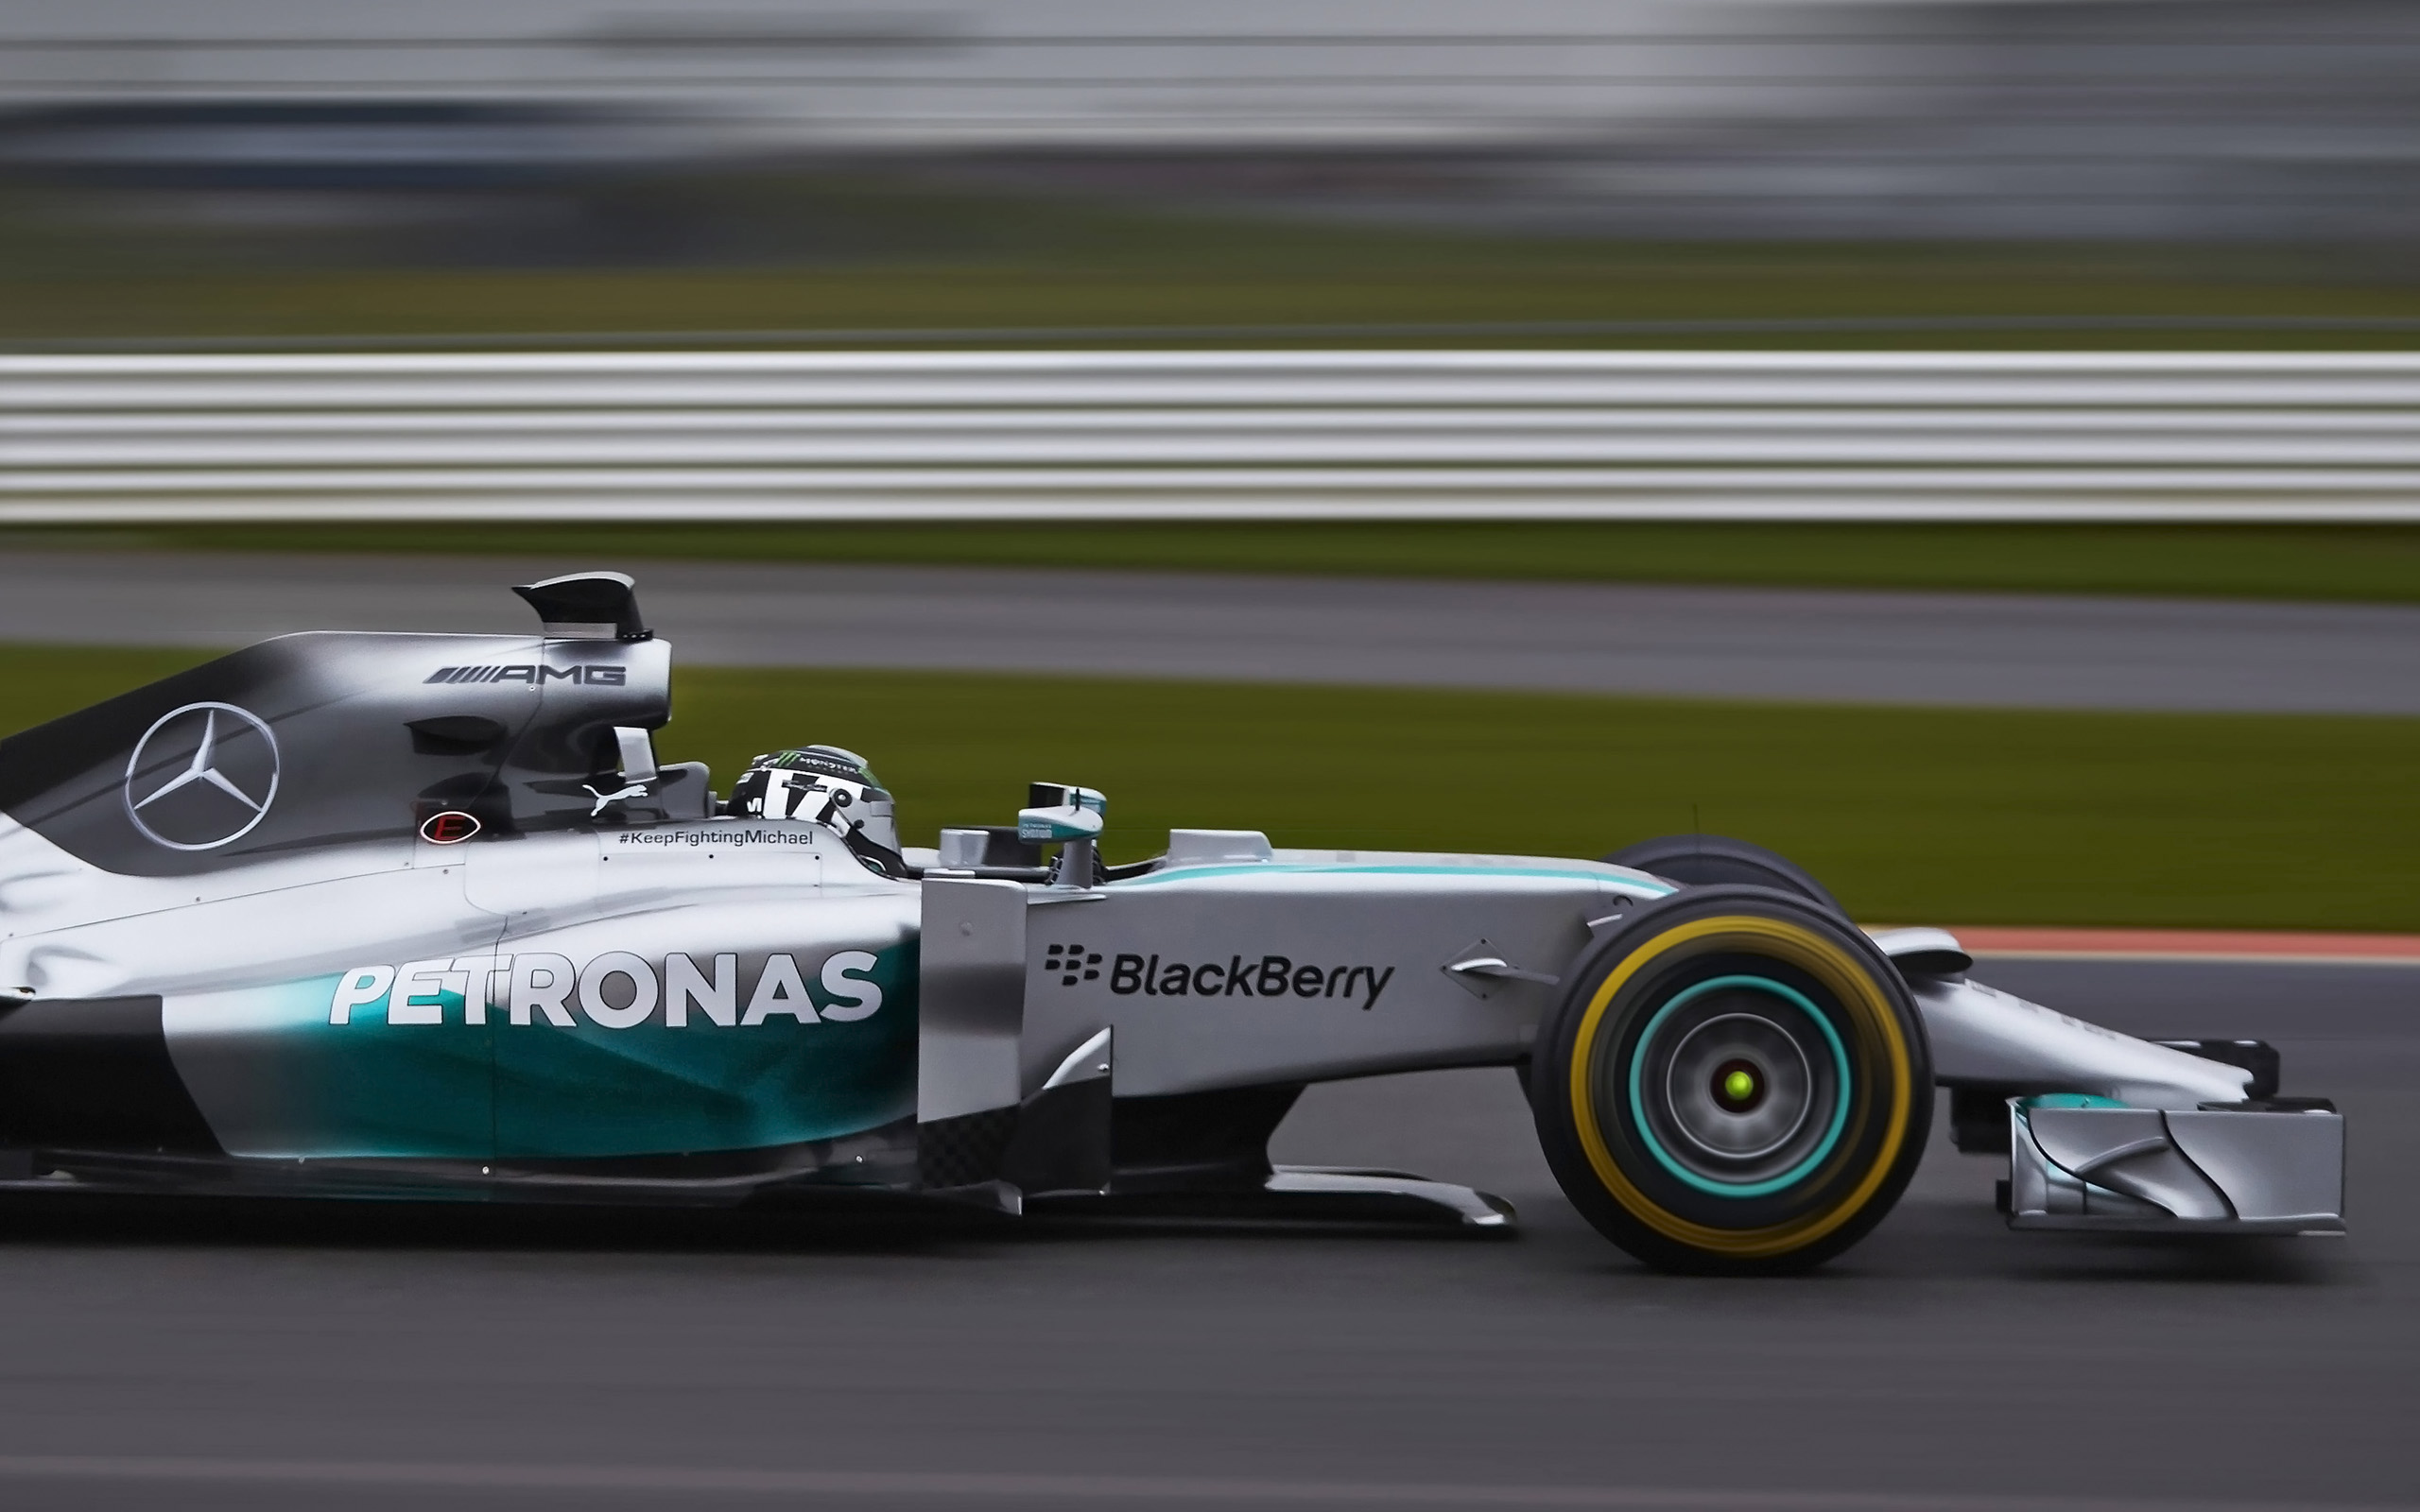 2014 mercedes amg petronas f1 w05 wallpaper hd car for Mercedes benz f1